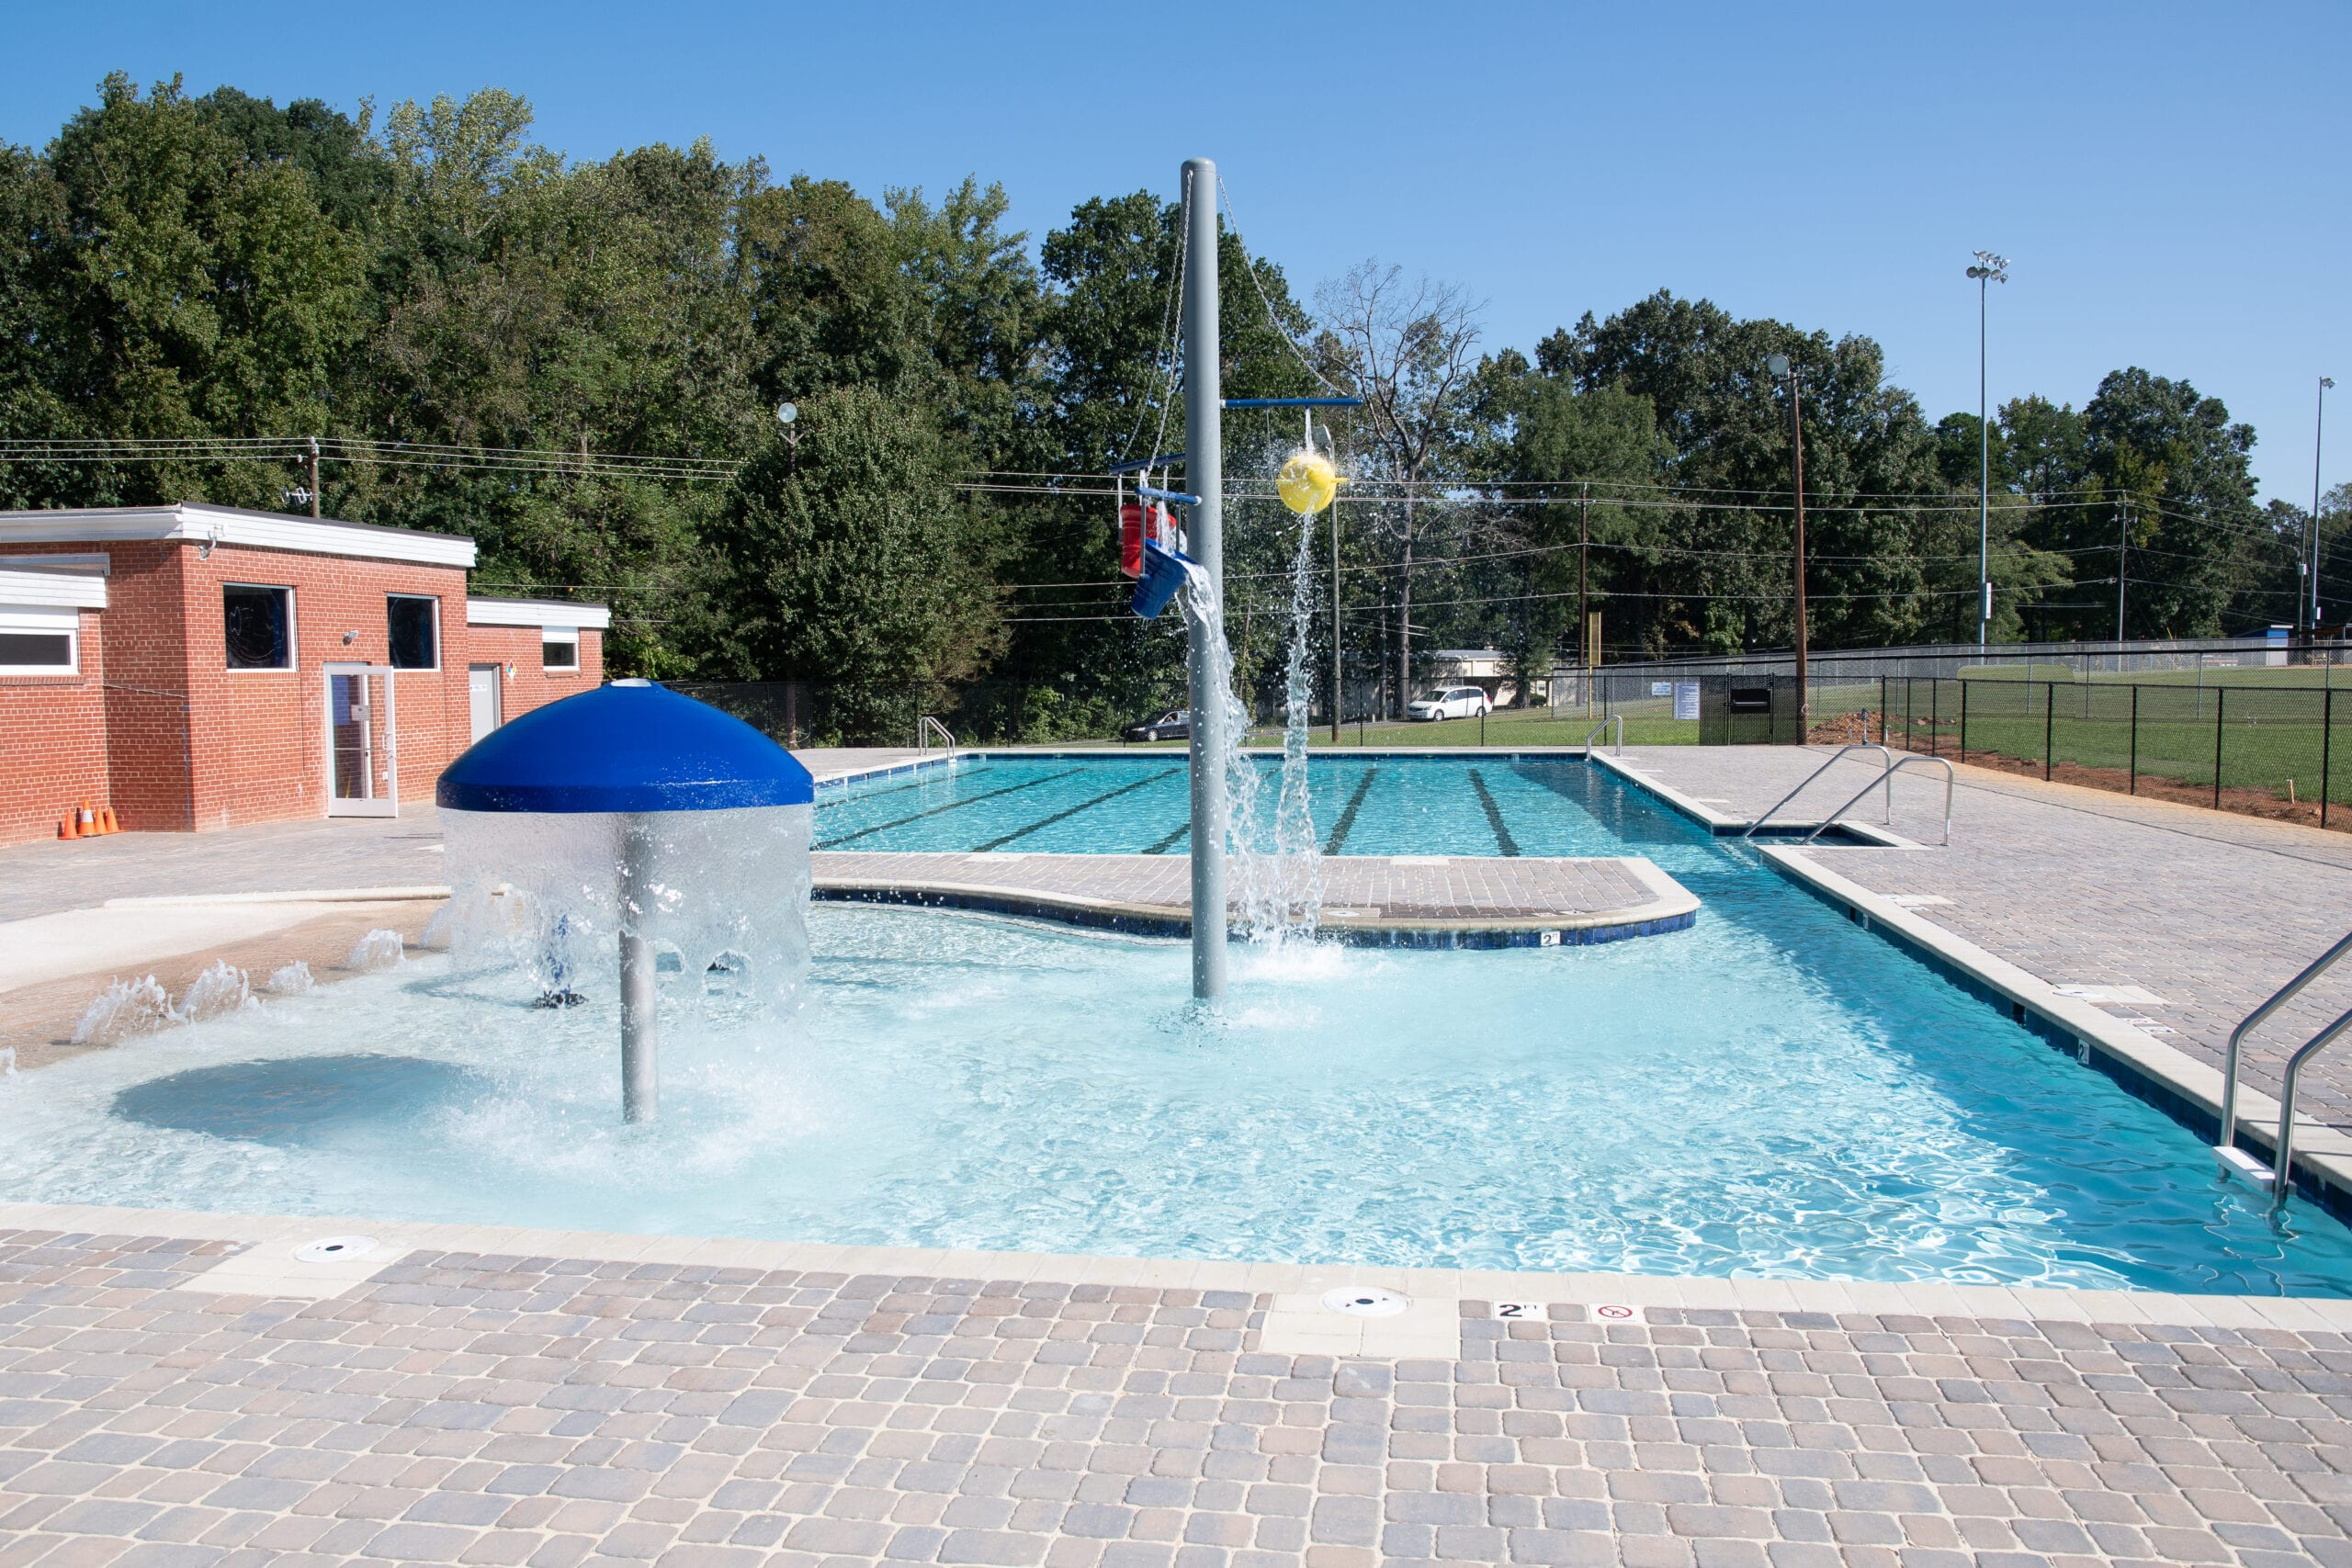 Bray Park Aquatic Facility by the Town of Siler City